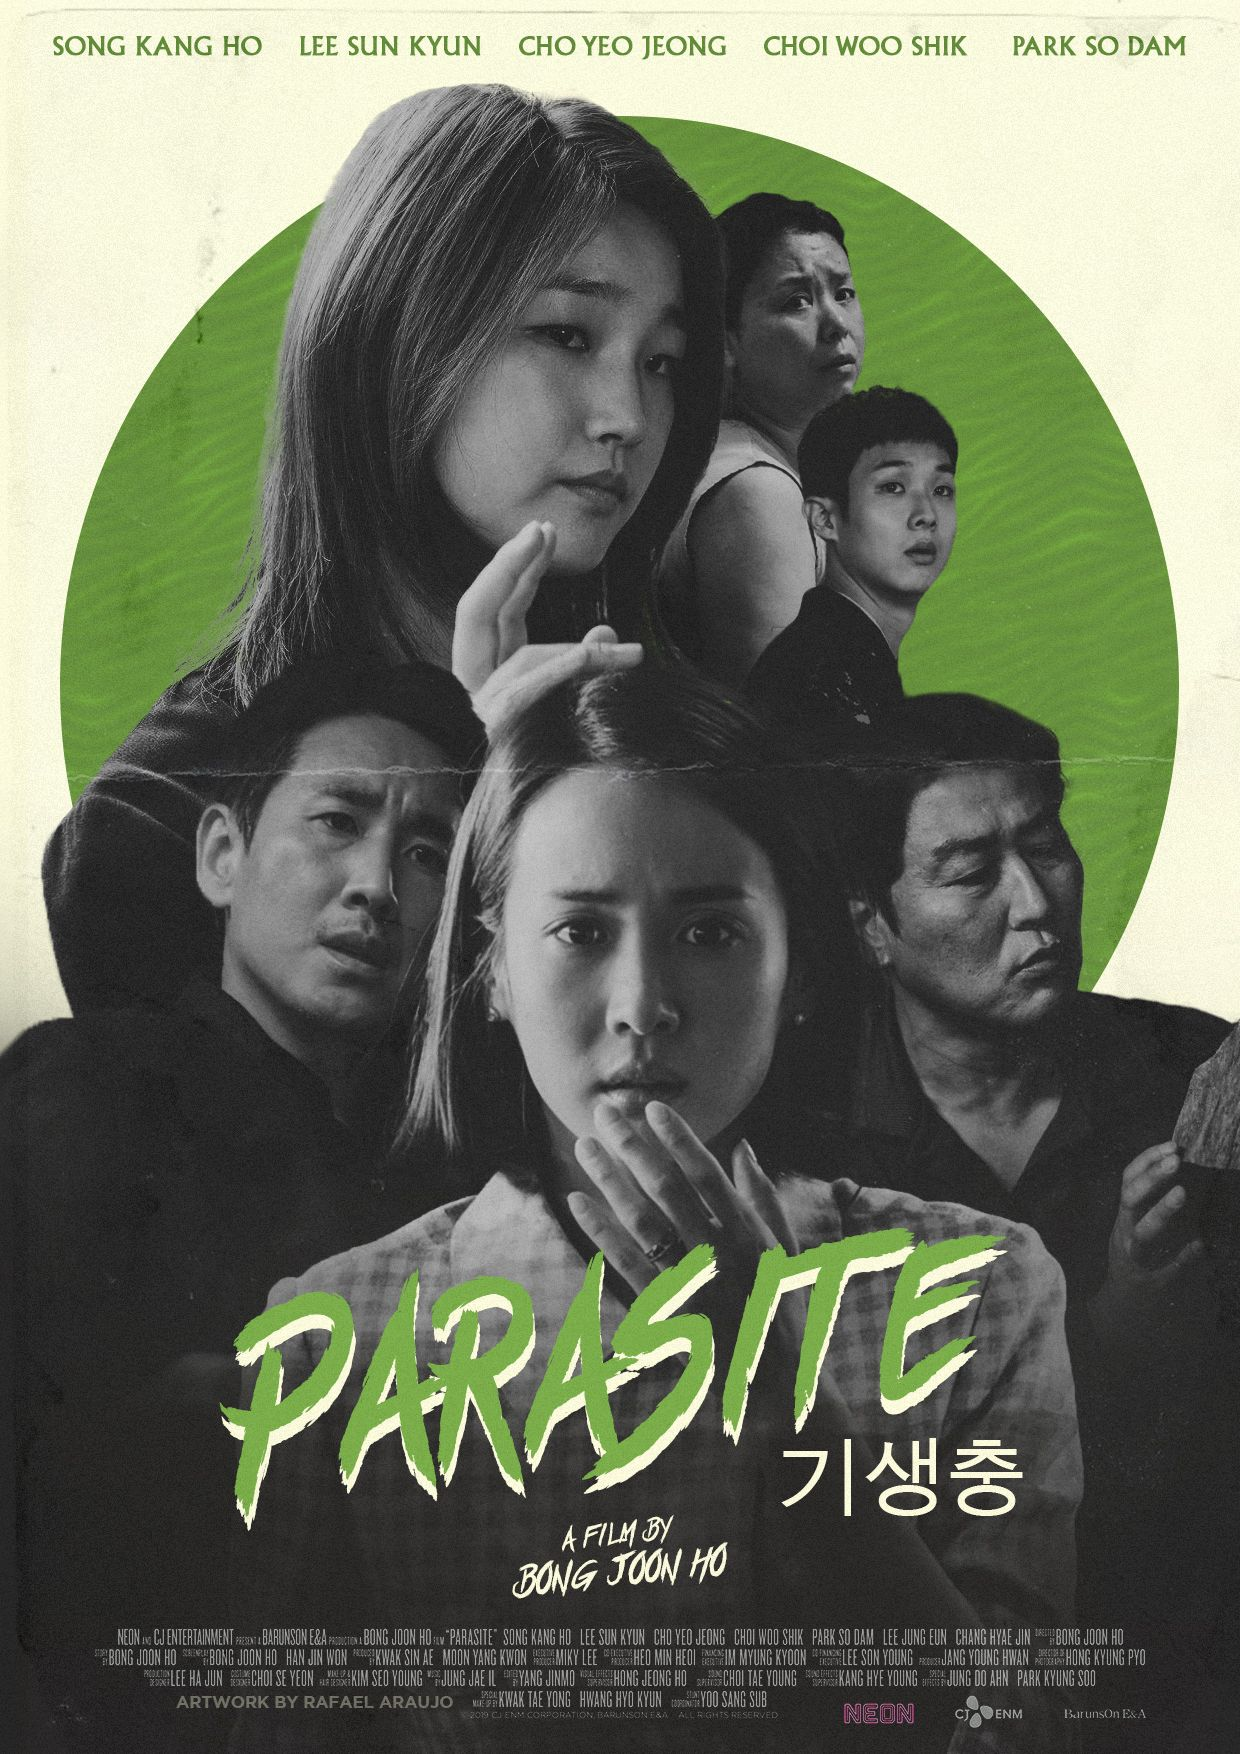 PARASITE (2019) VHS Cover by amazing-zuckonit on DeviantArt